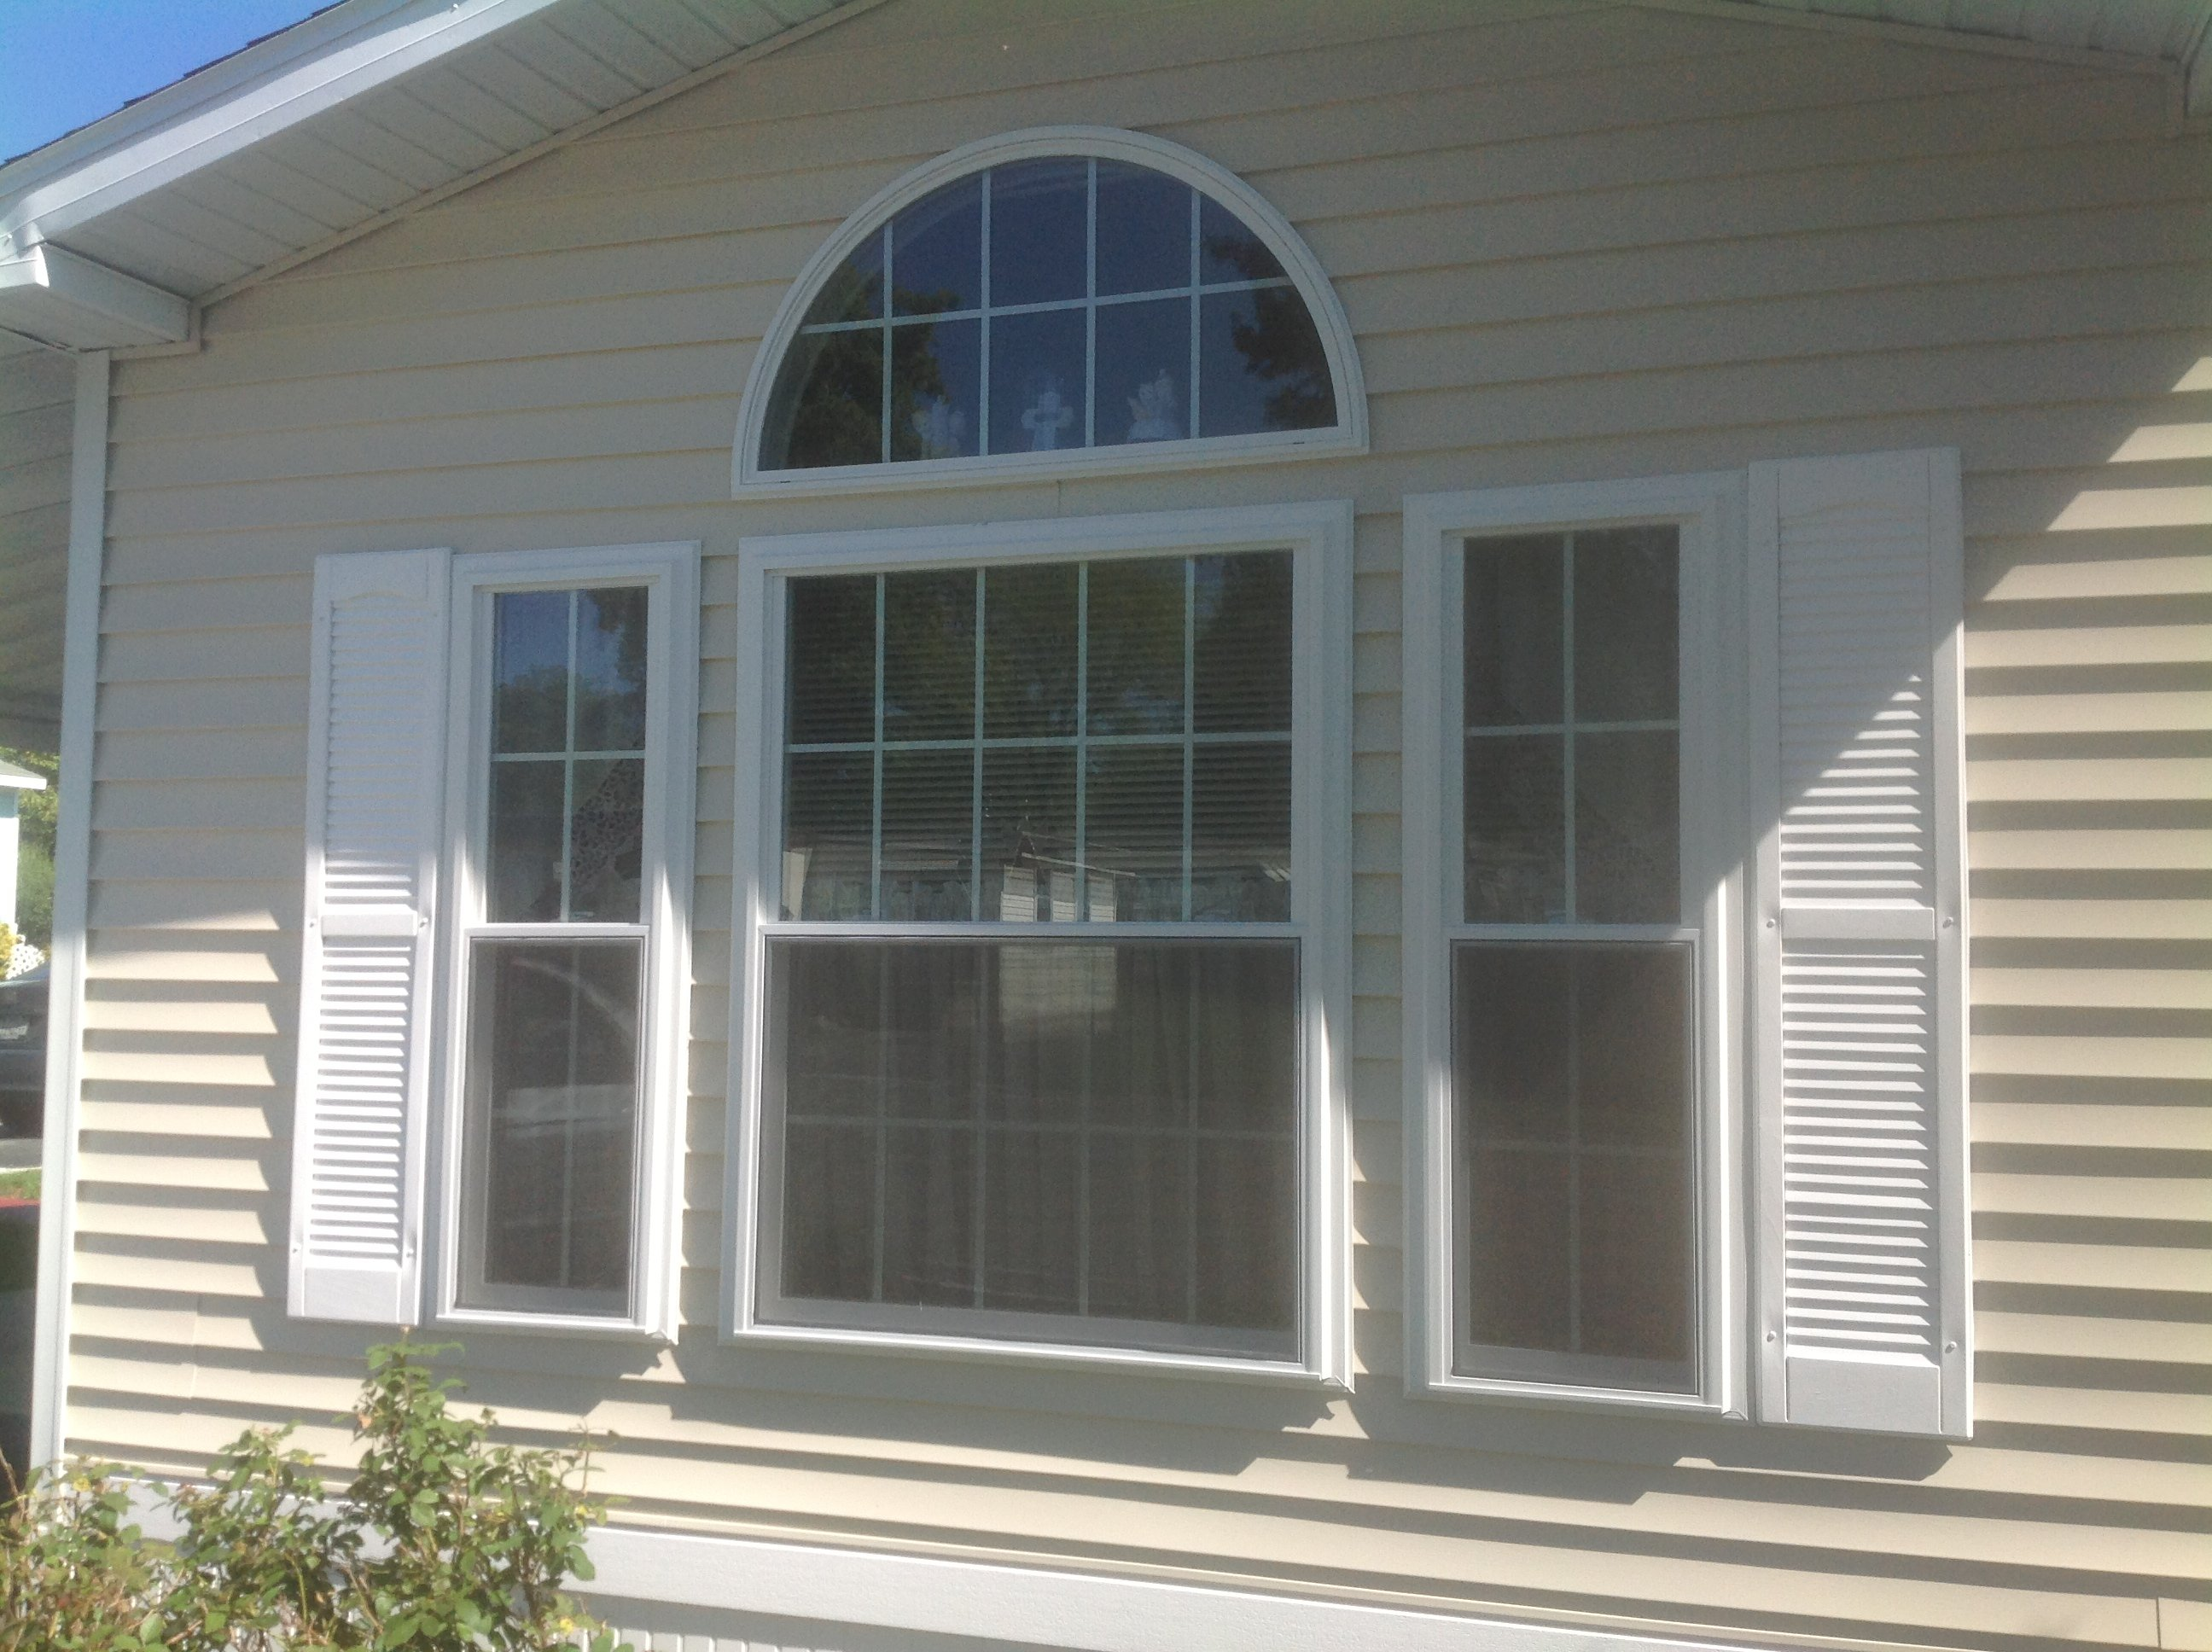 House window styles - Window Styles For Your Home